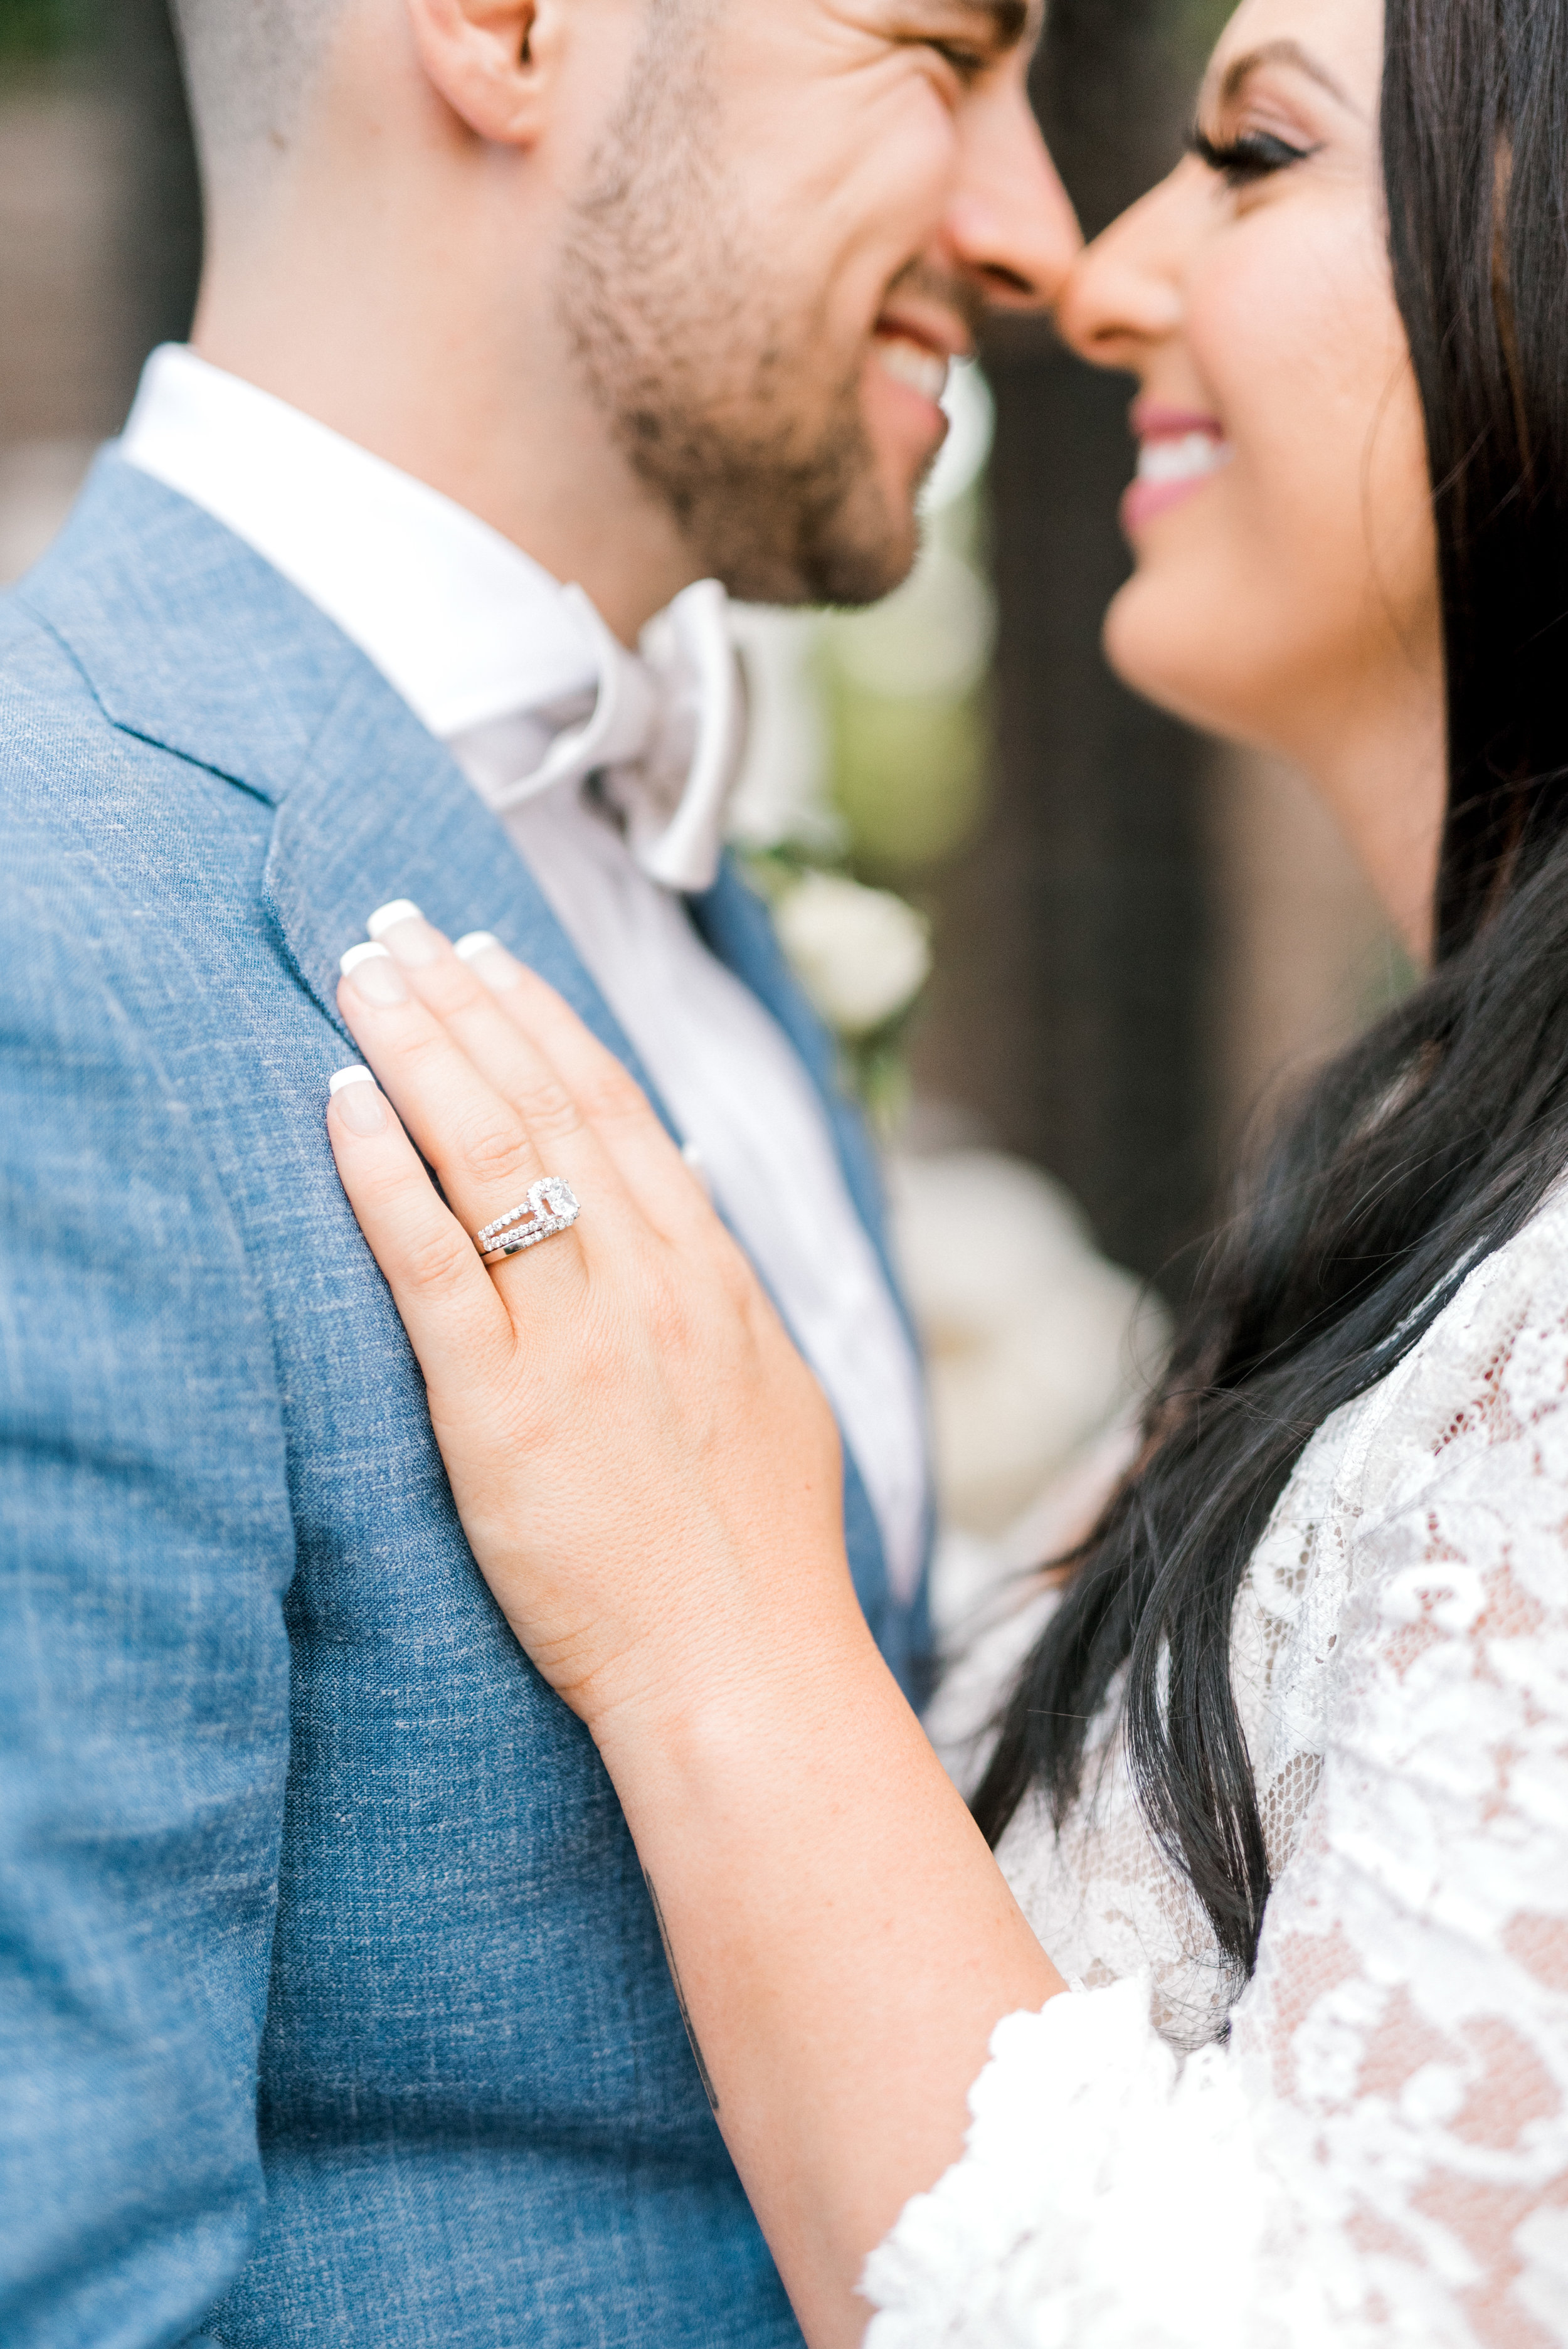 Check out that square diamond with halo ring that Alicia rocked for her bright boho chic Tyler Gardens wedding in Bucks County